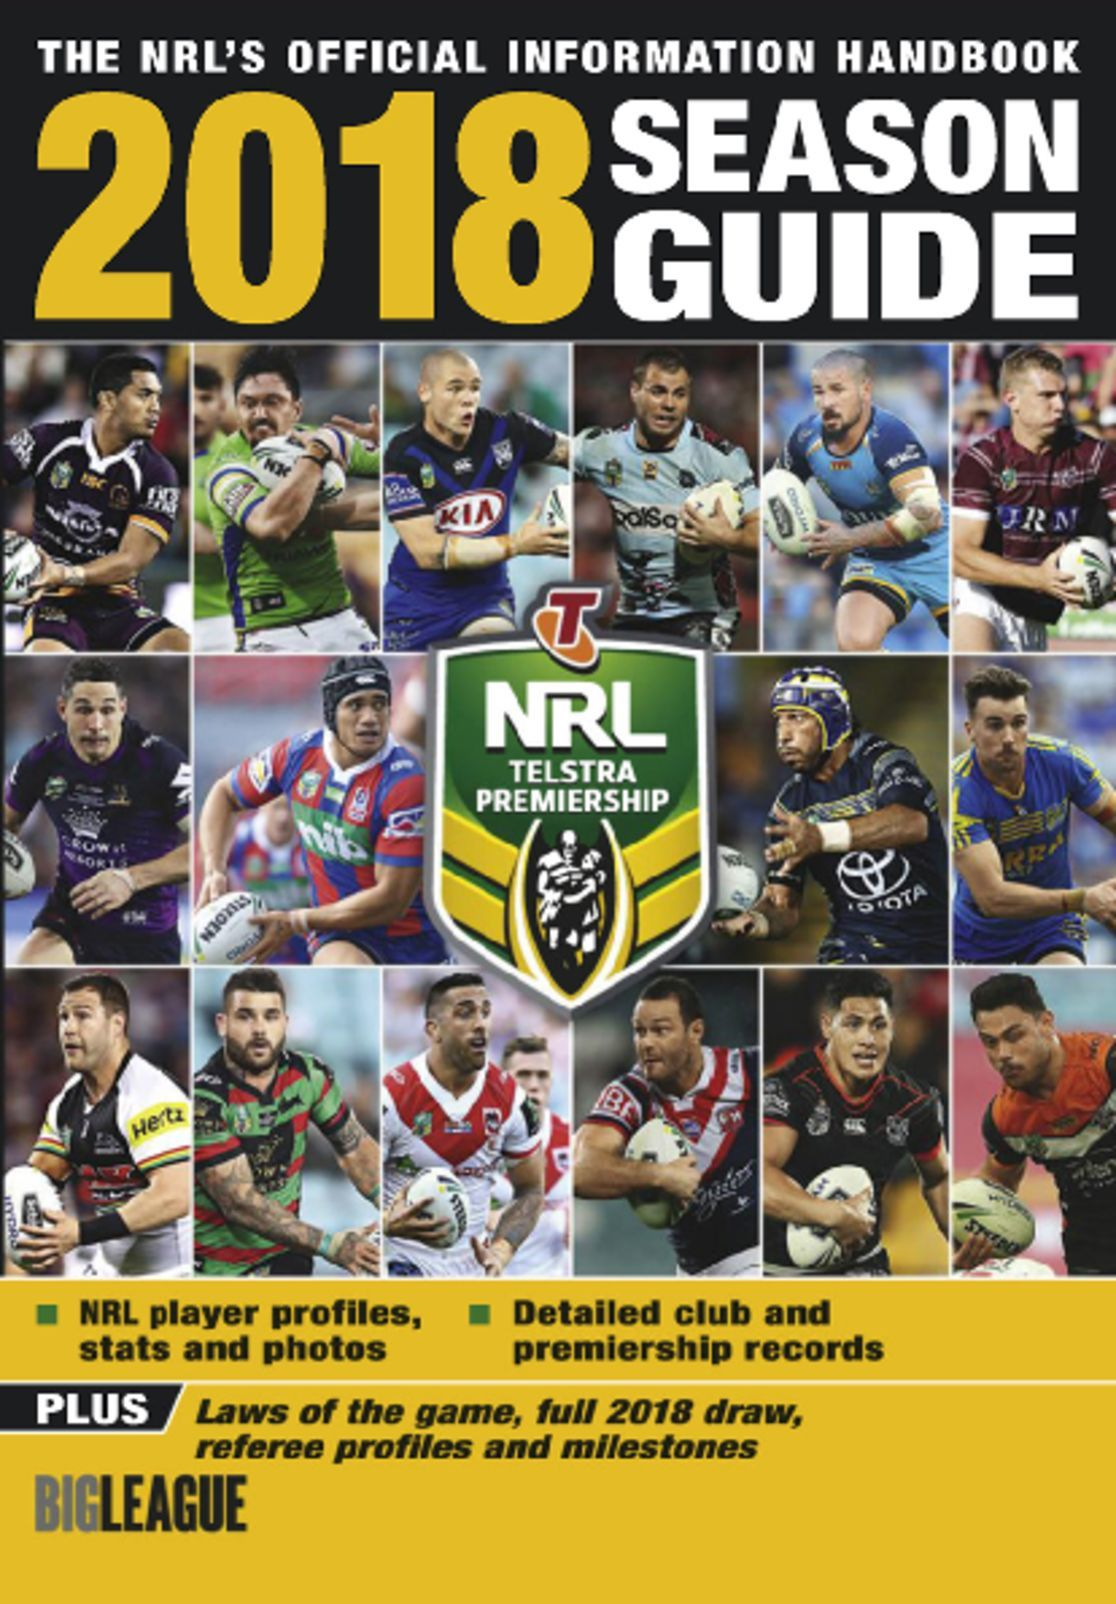 Big League NRL Season Guide Digital